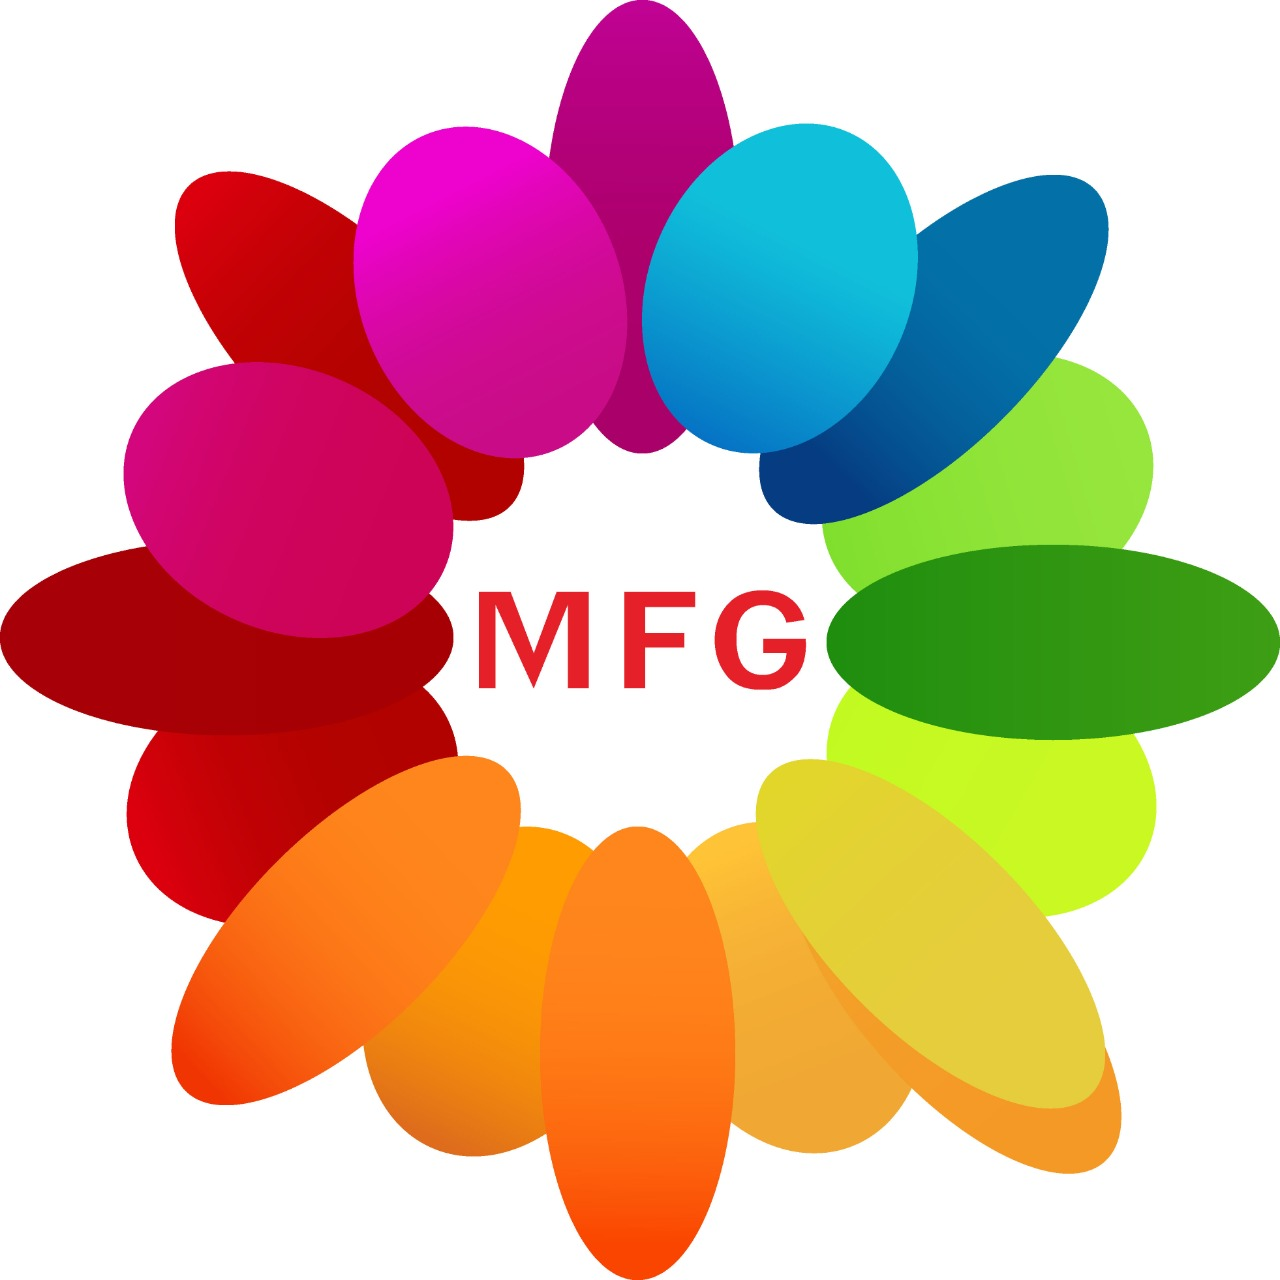 Bunch of 15 red carnations with box of 1 kg assorted sweets from Haldiram